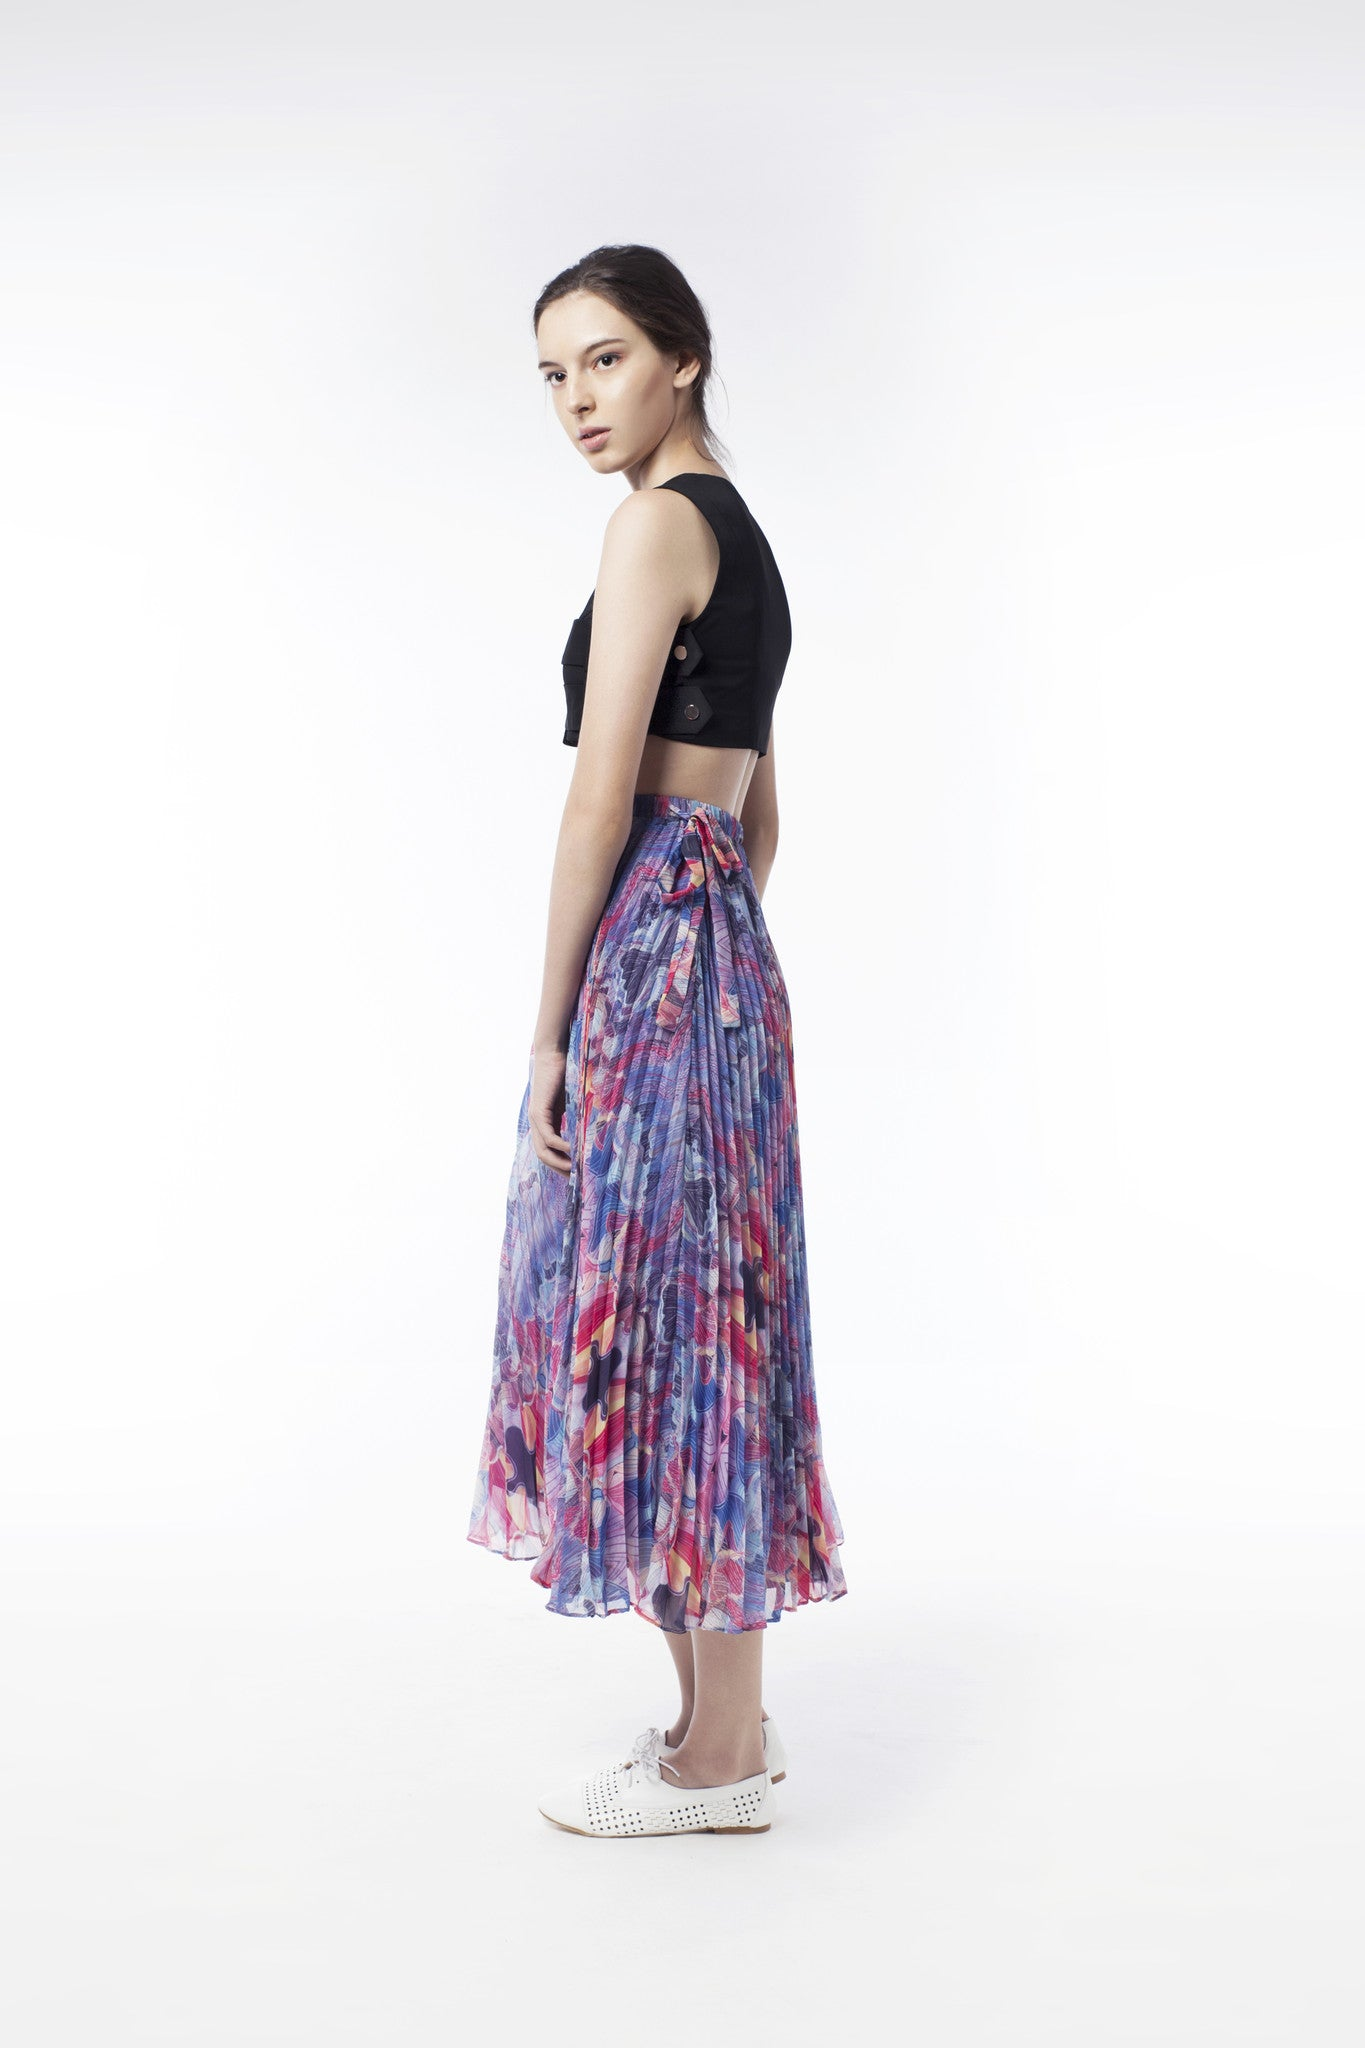 Kaleidoscopic Print Pleat Skirt - GlanceZ   - 3